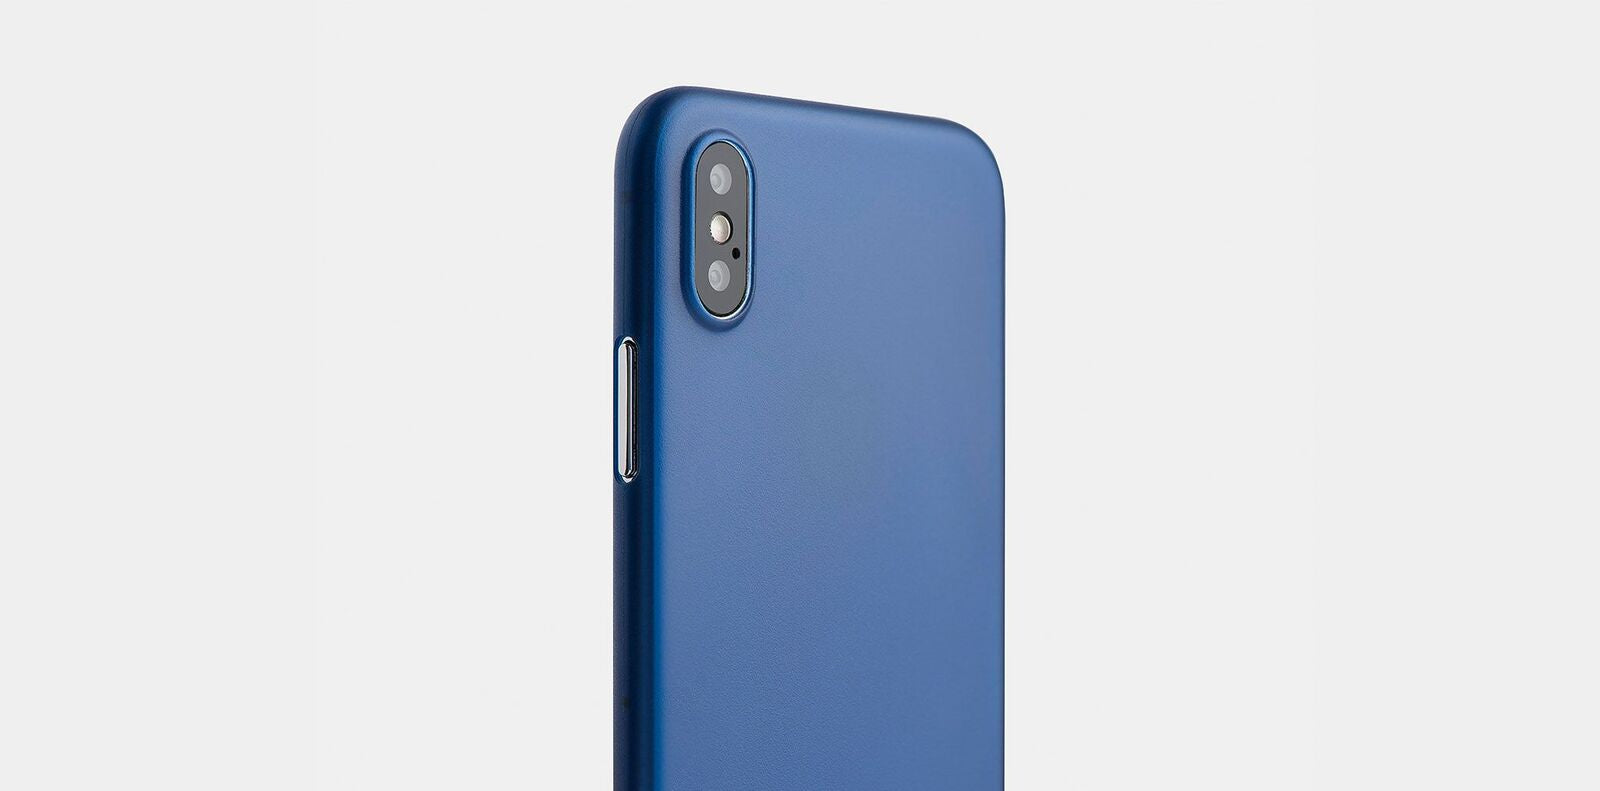 totallee's slim protective iPhone X cover